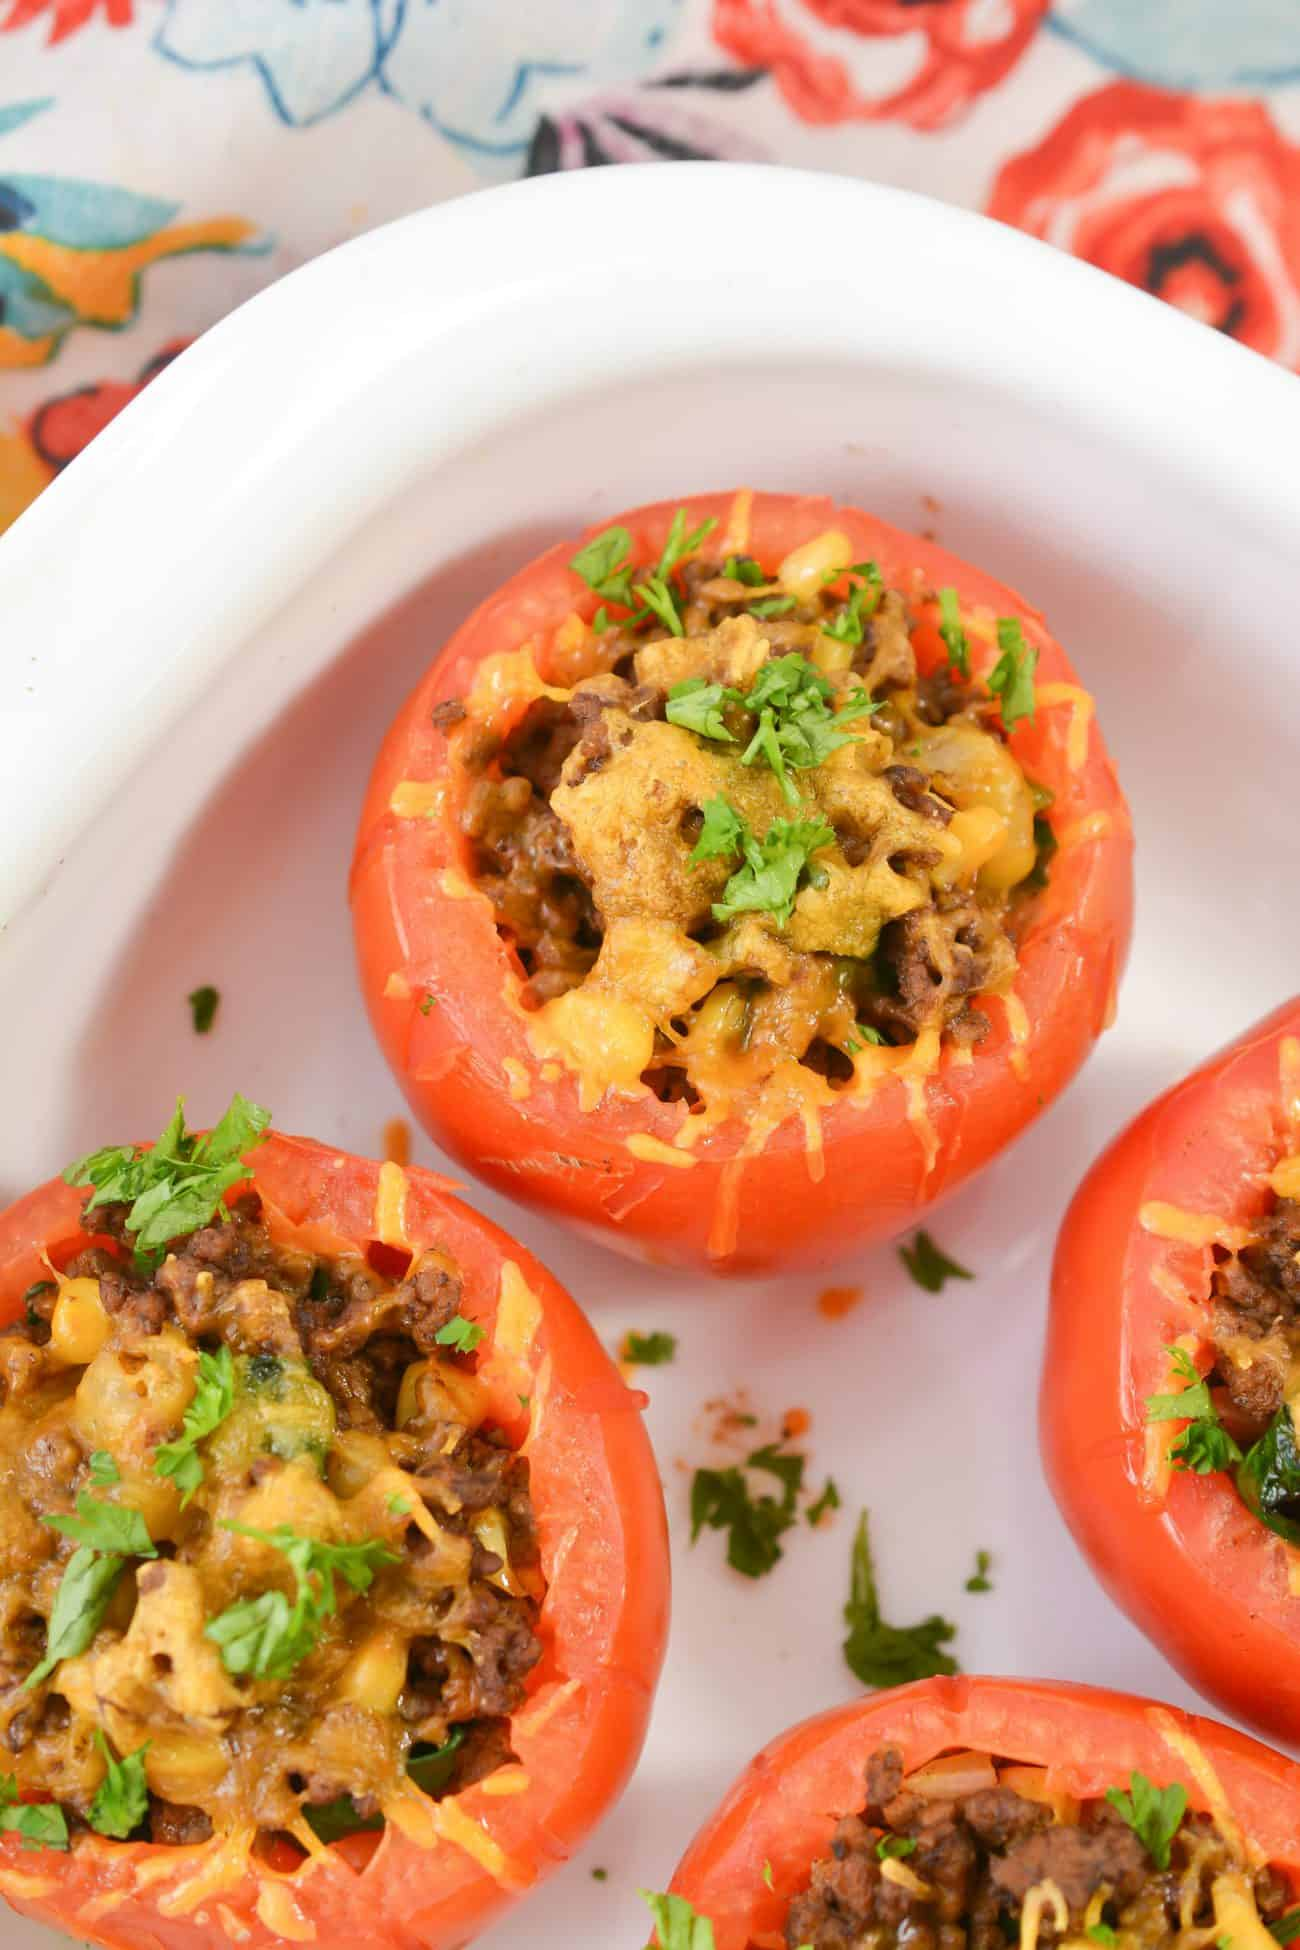 Taco stuffed tomatoes